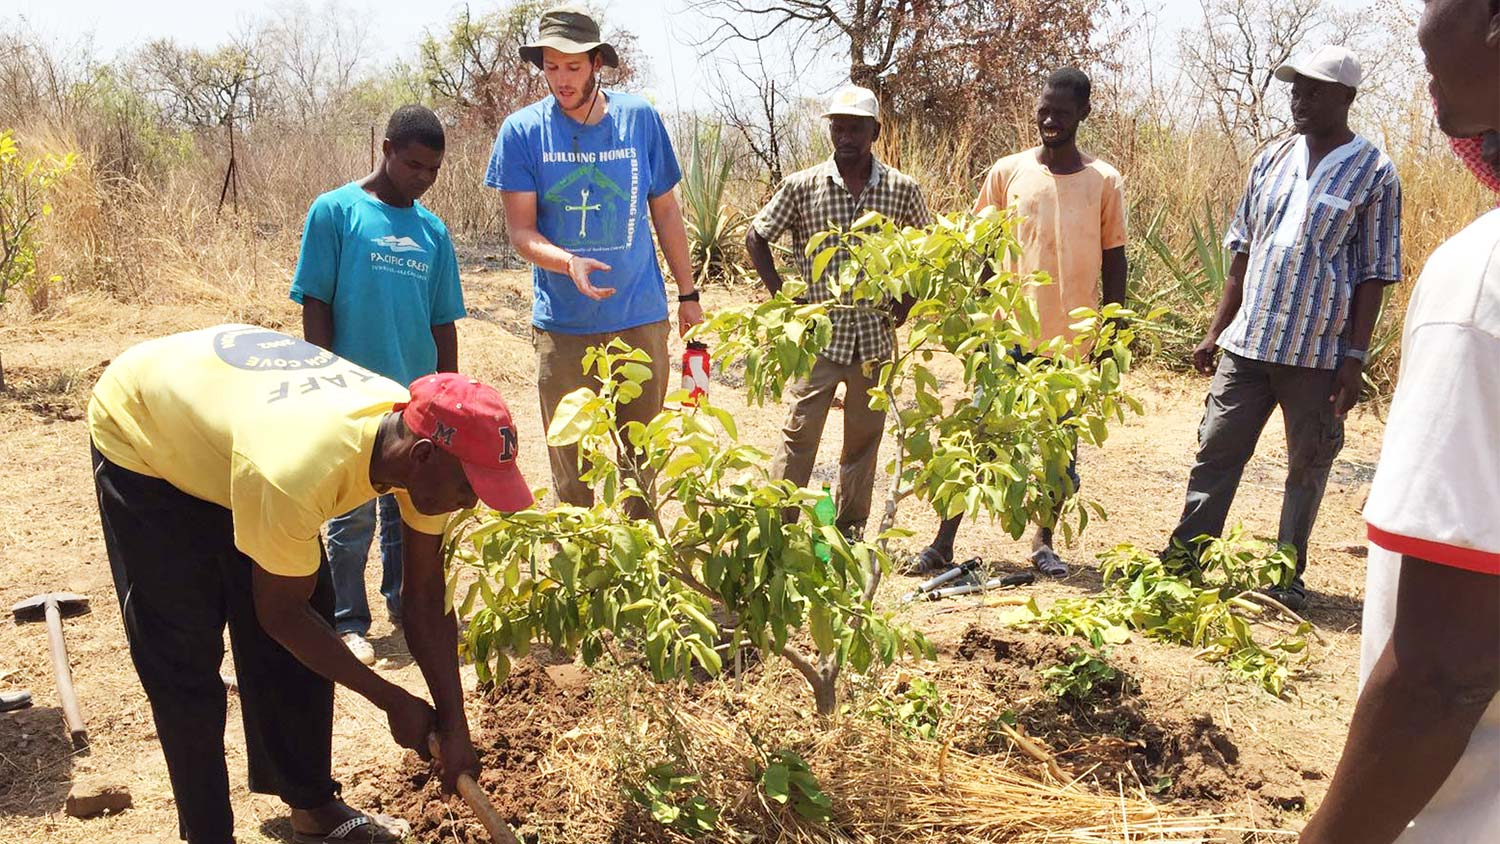 CALS grad Jack Alcorn working with growers in Senegal